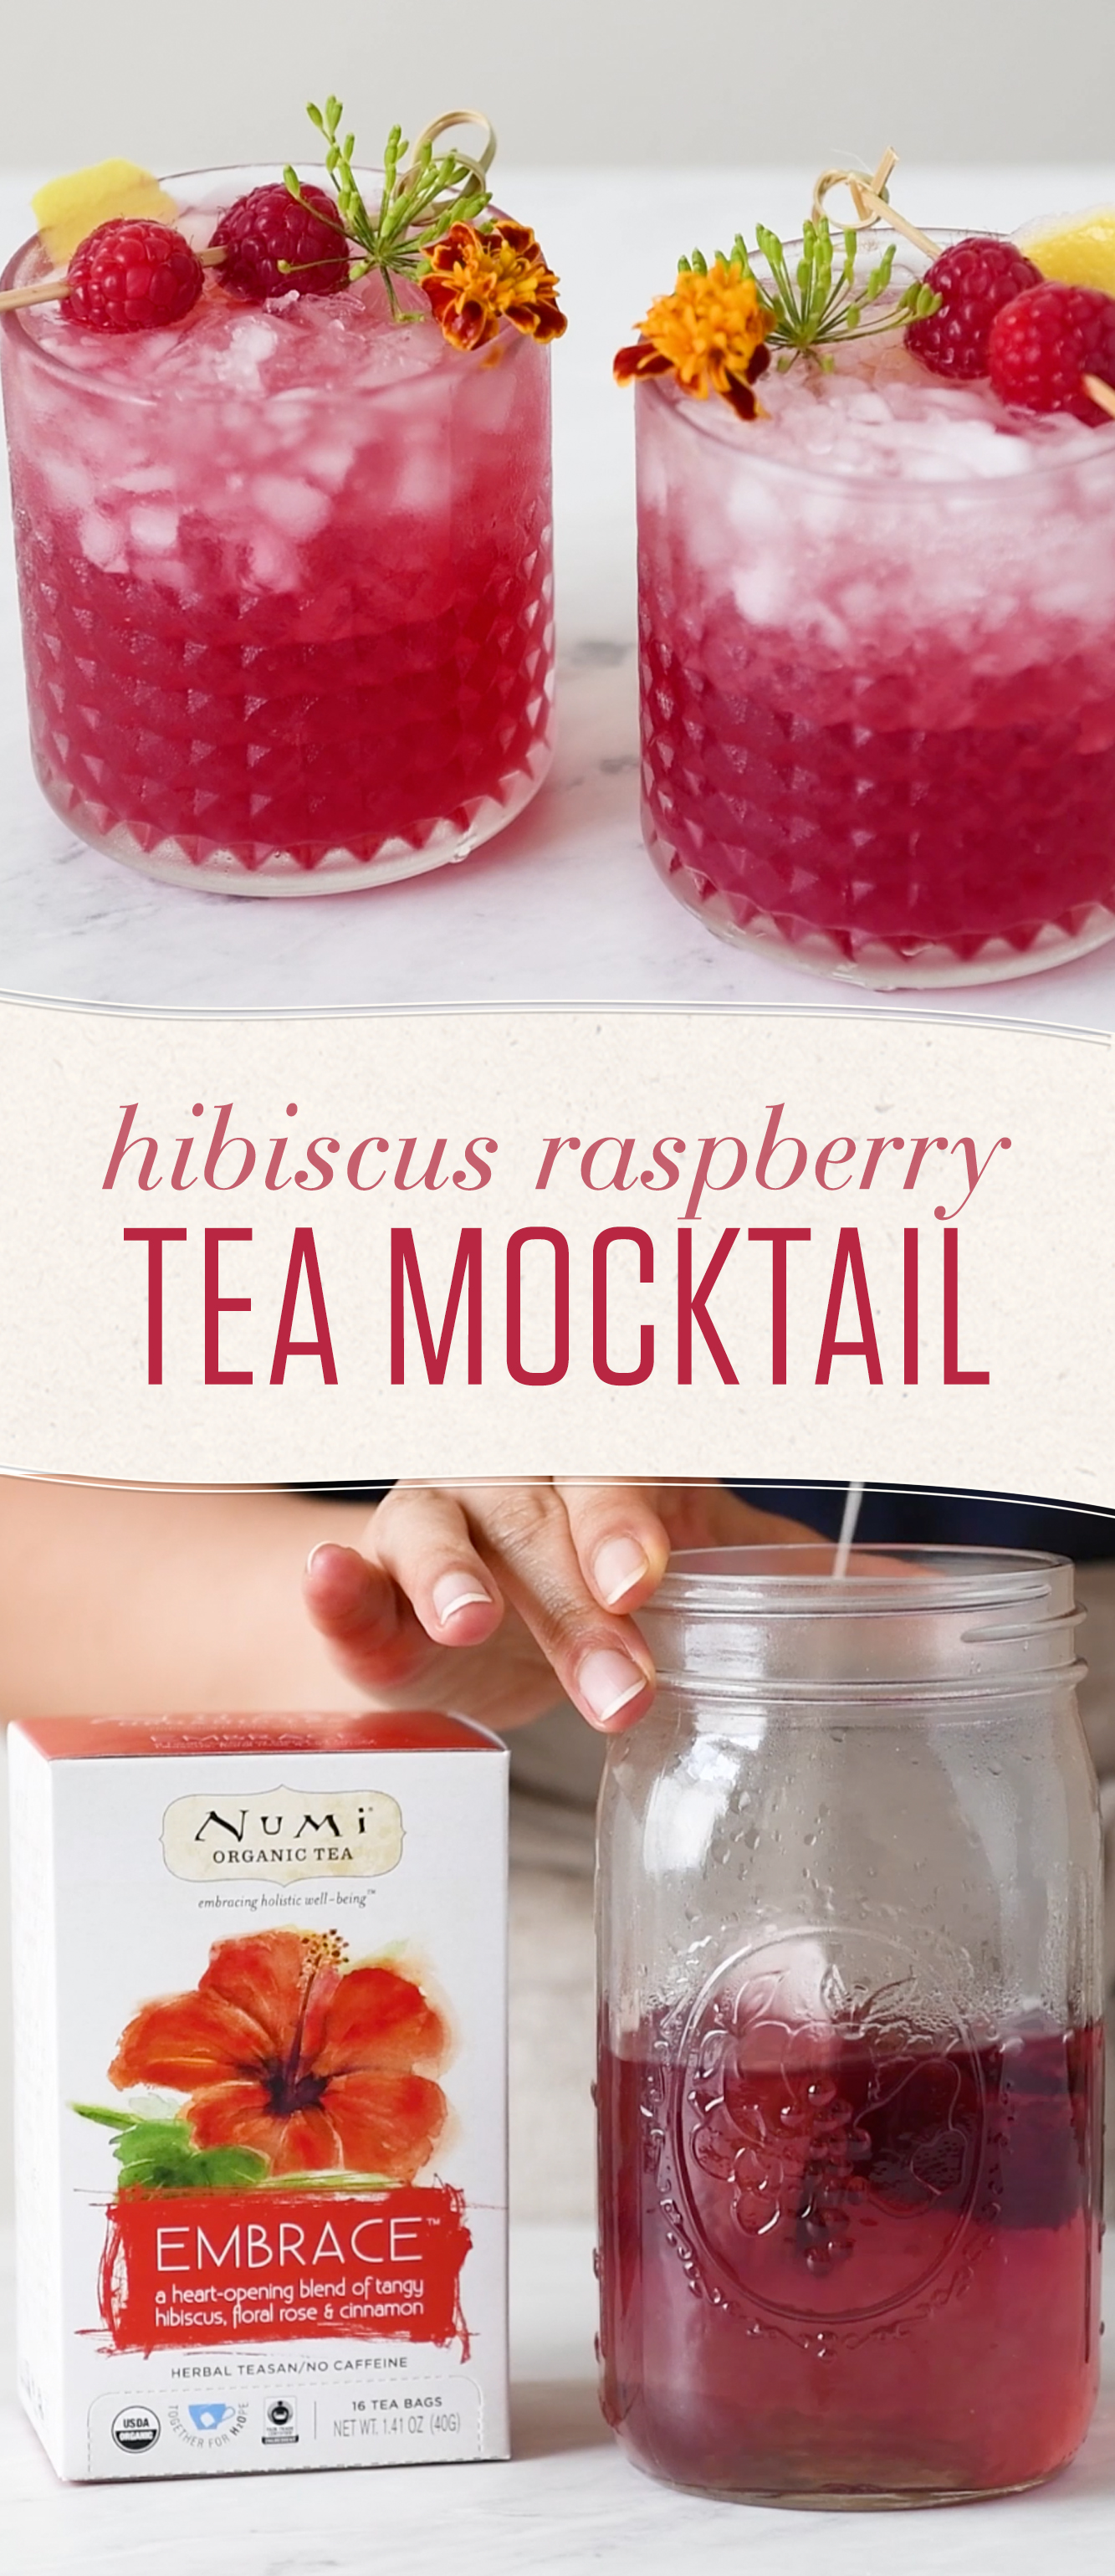 Skip the booze and go big on flavor with this hibiscus tea mocktail. This non-alcoholic treat will keep you hydrated and refreshed all summer!